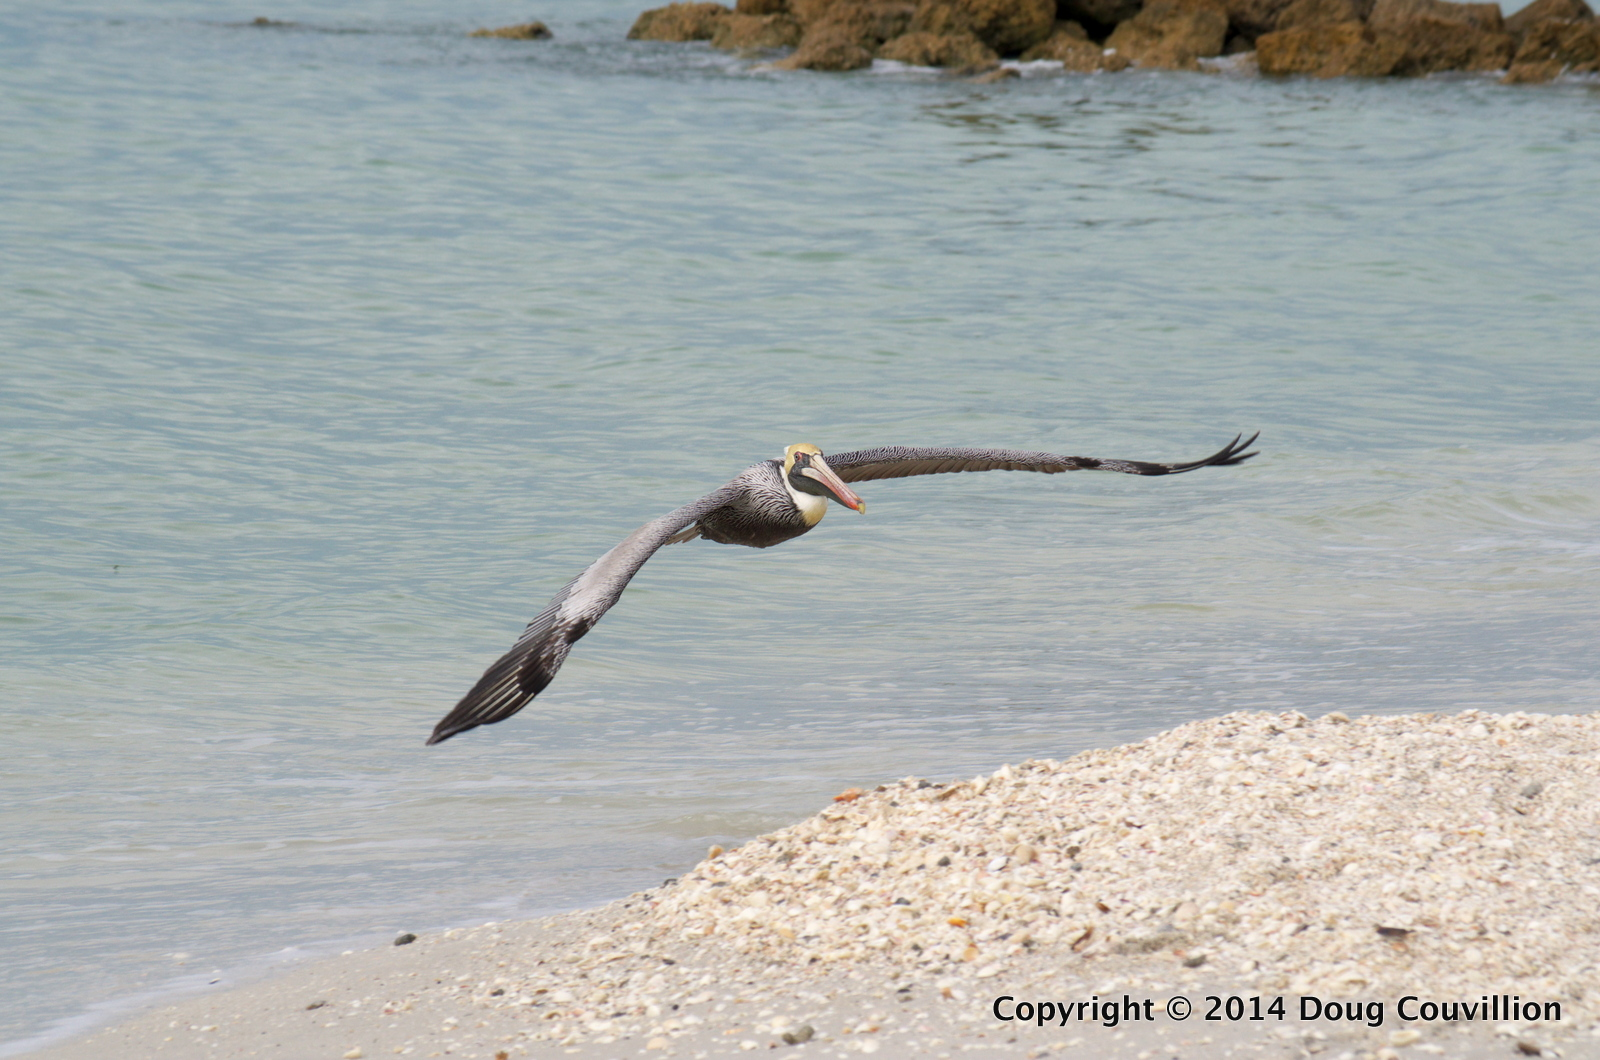 photograph of a brown pelican landing on a beach on the Florida Gulf Coast